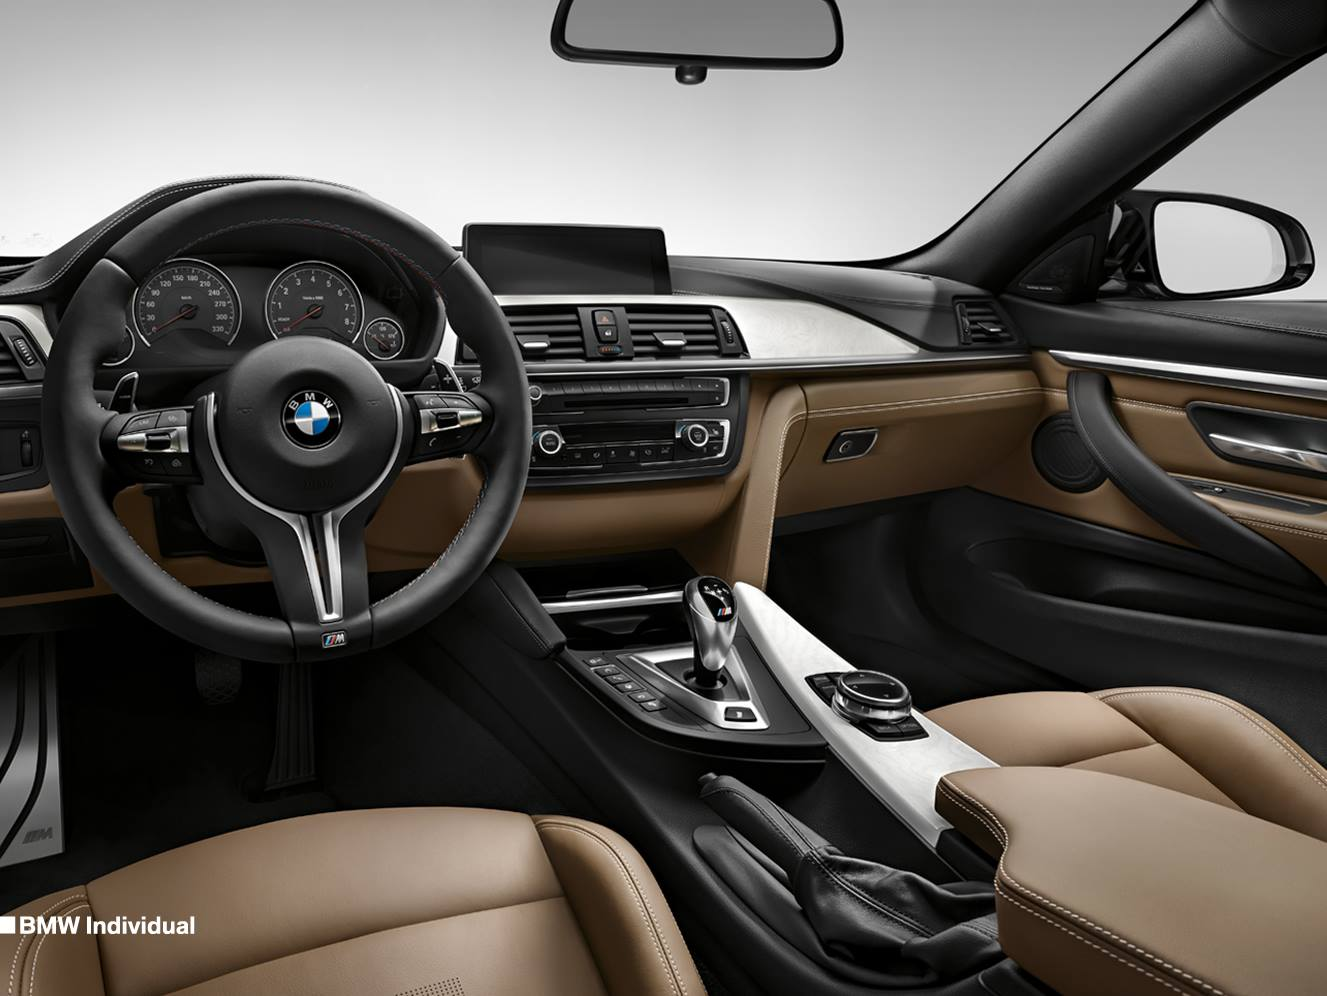 BMW teases the 'Individual line' 2014 M3 and M4 Coupe